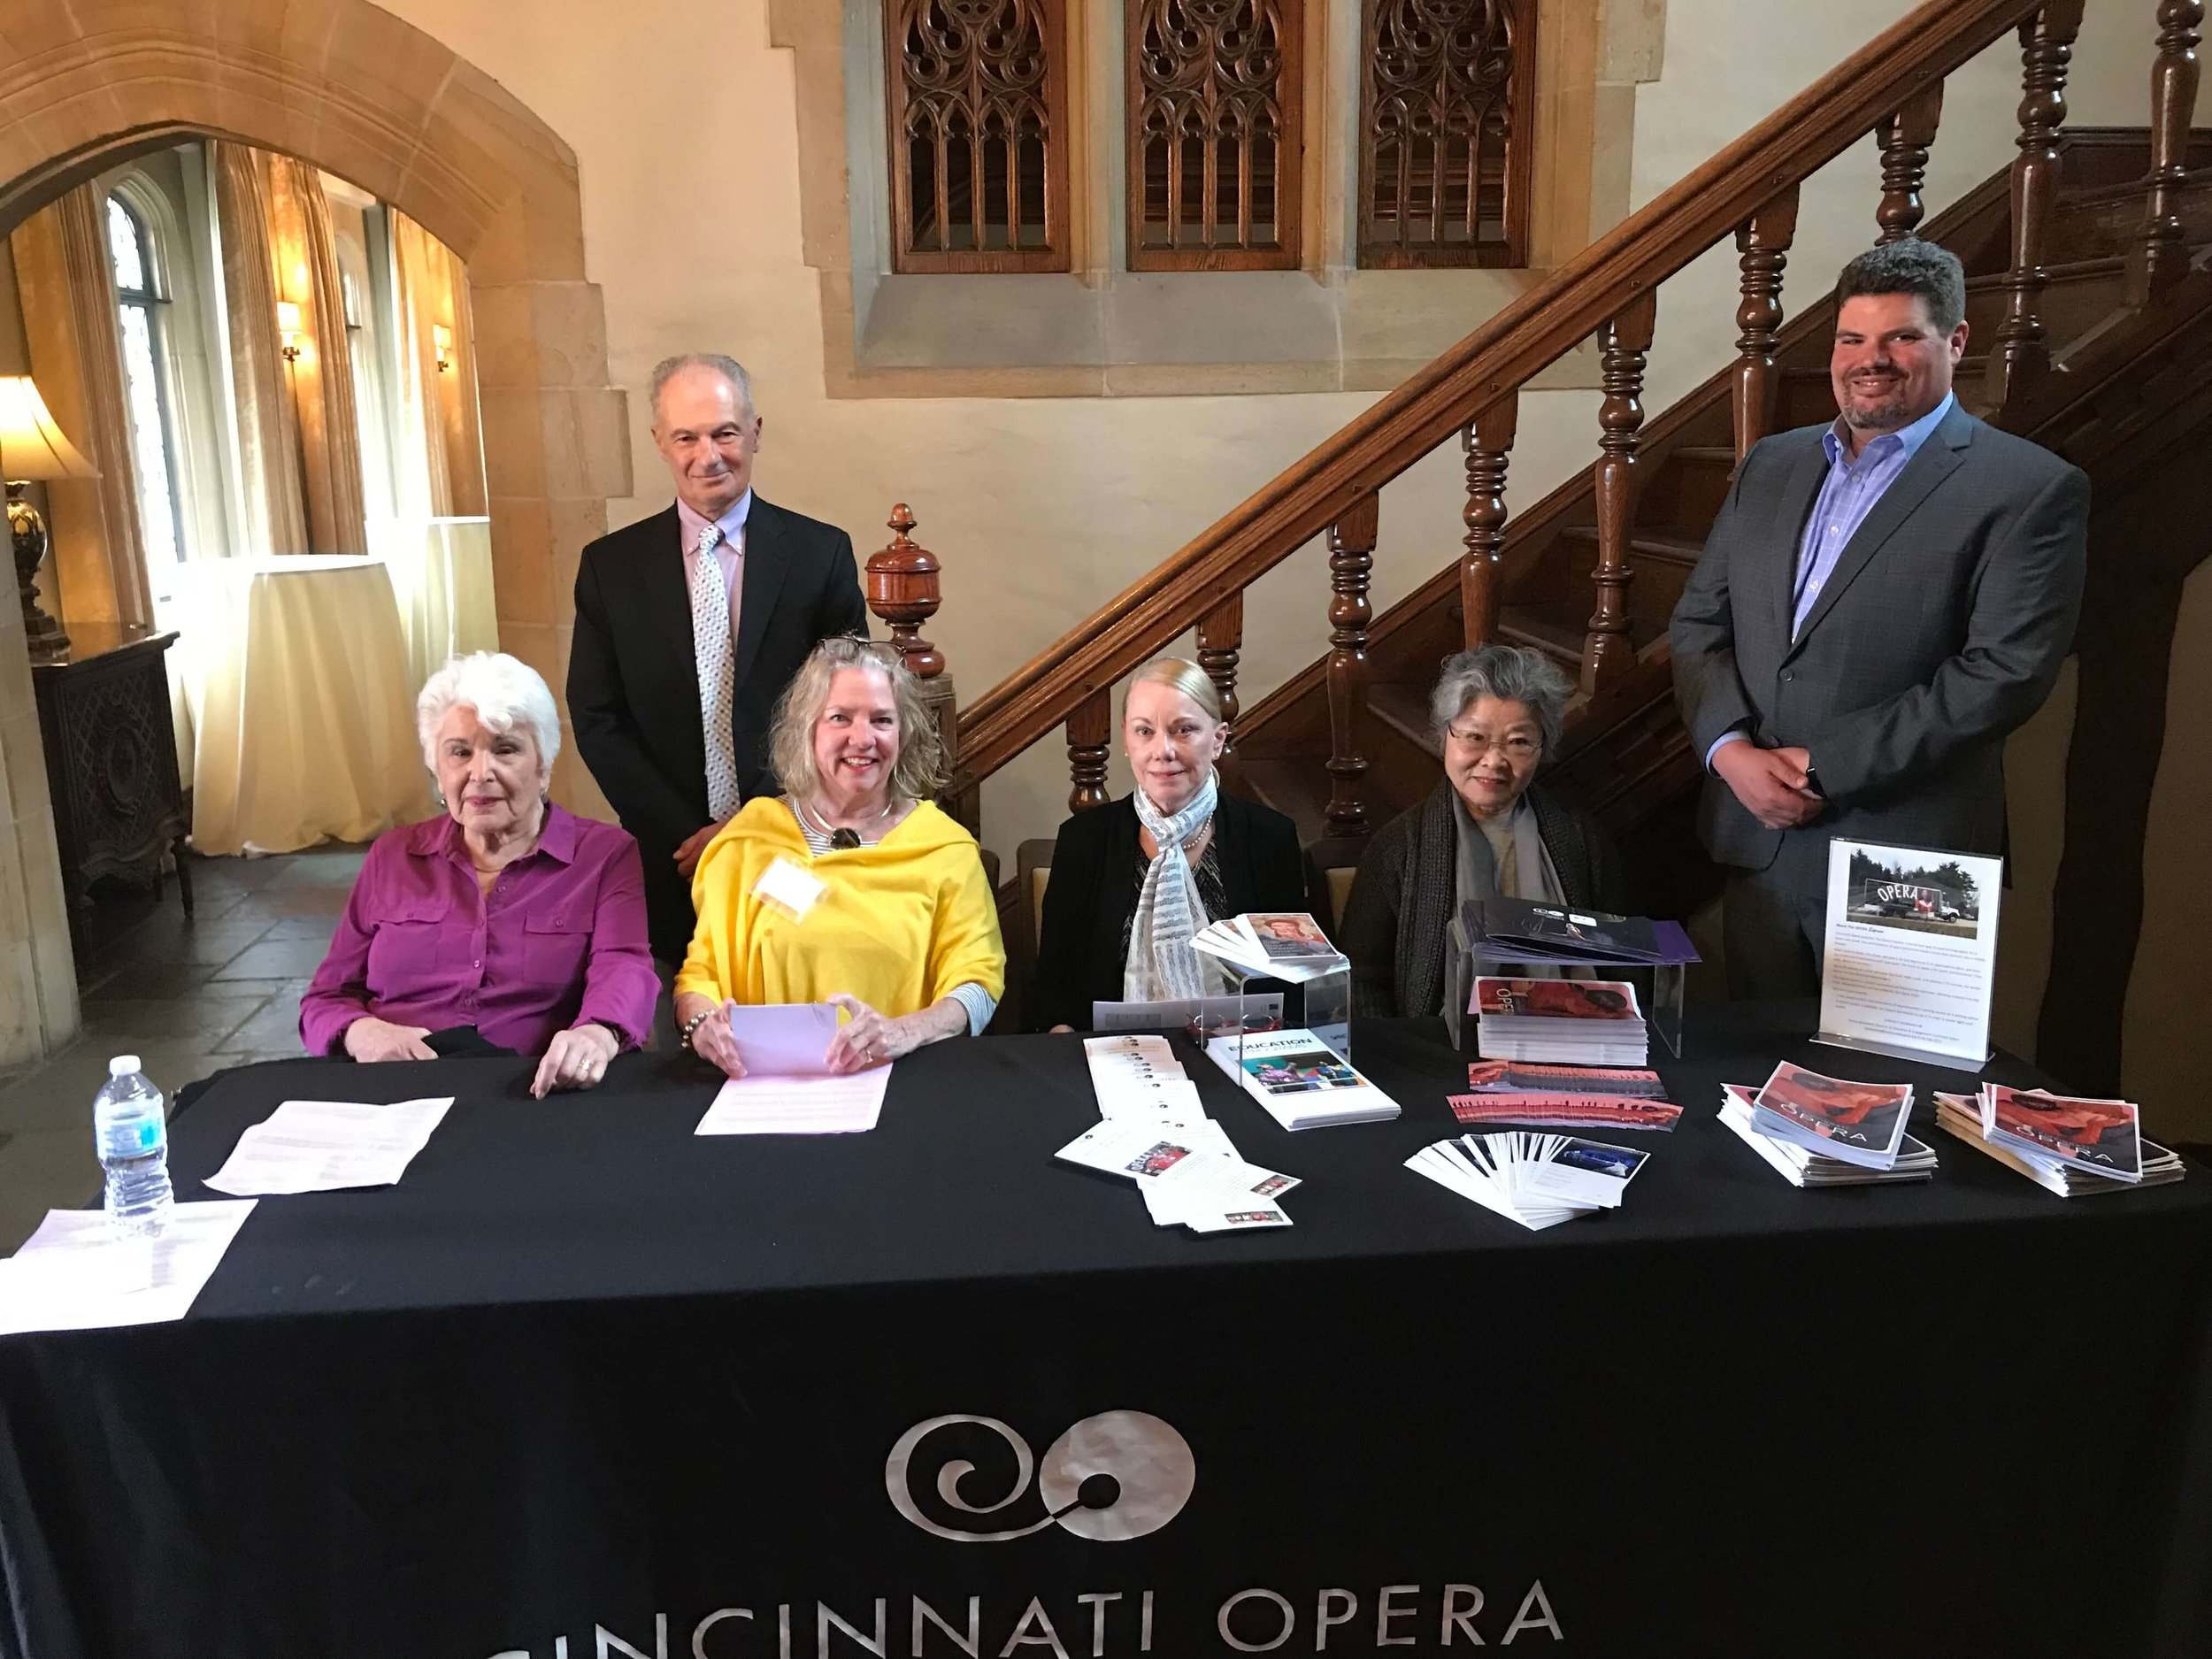 Members of the Cincinnati Opera Guild welcome guests to the  Ariadne auf Naxos  Opera Rap held at Pinecroft at Crosley Estate.